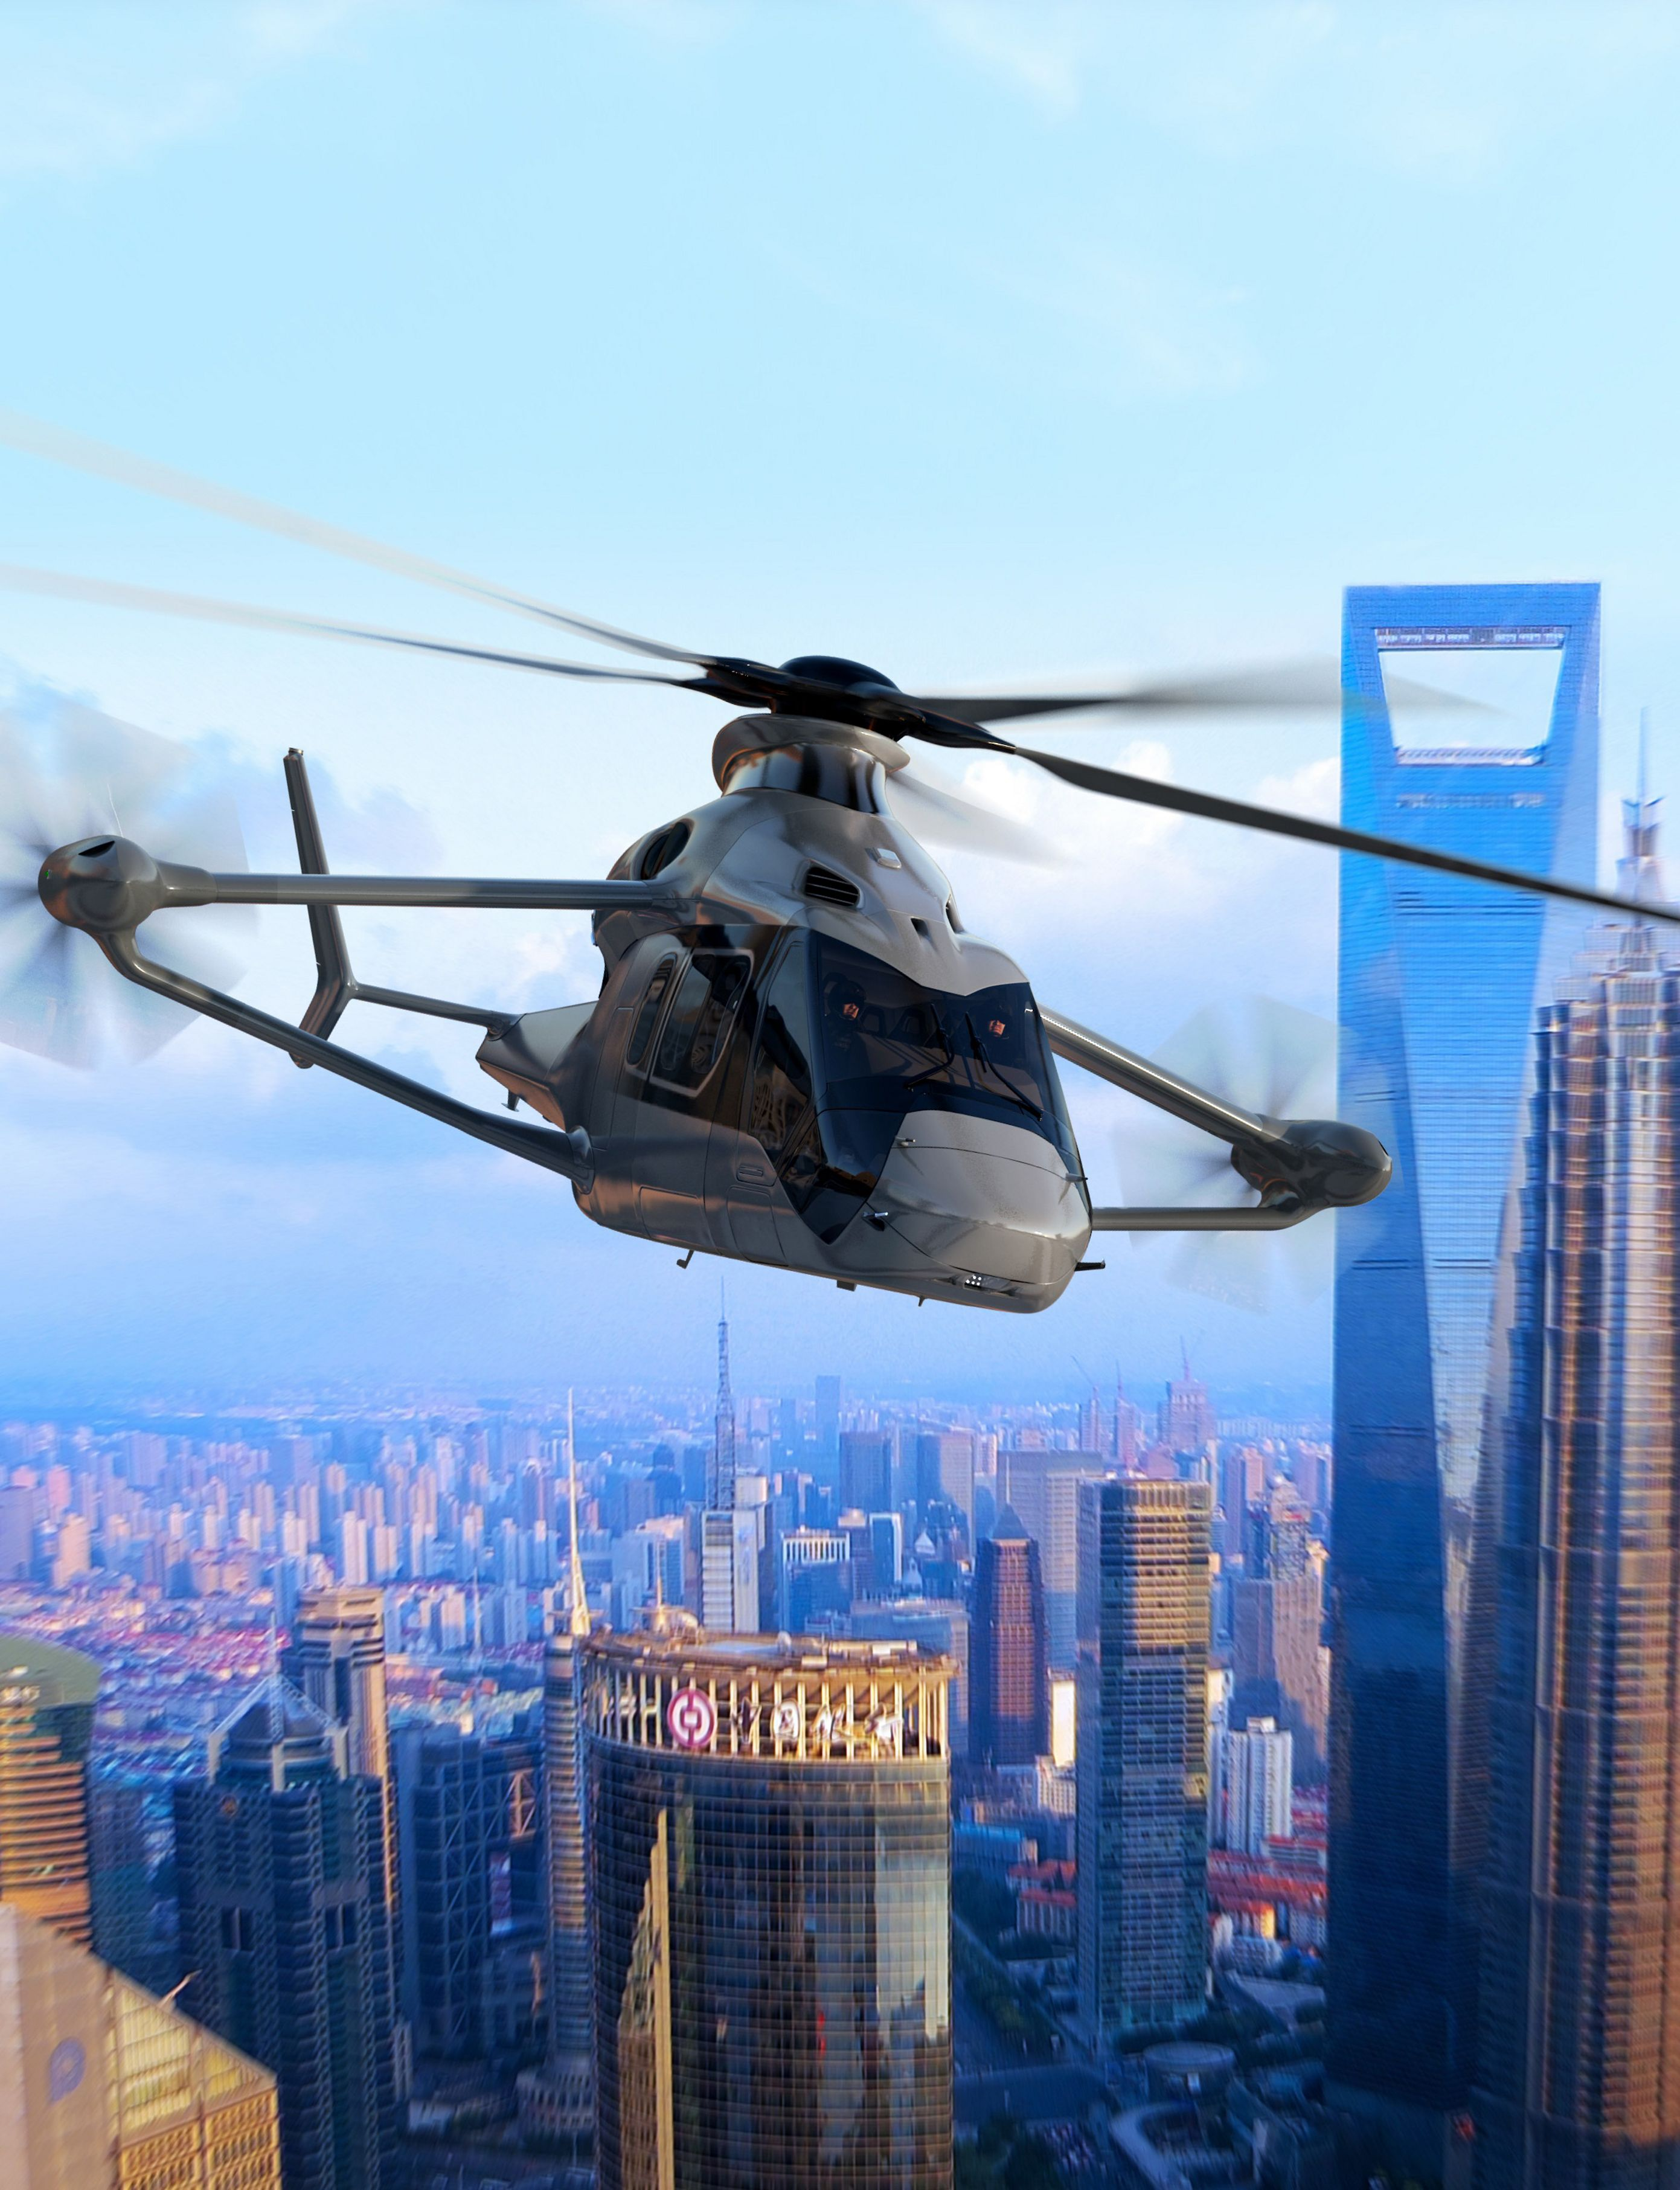 Airbus's High-Speed Helicopter Project Racer